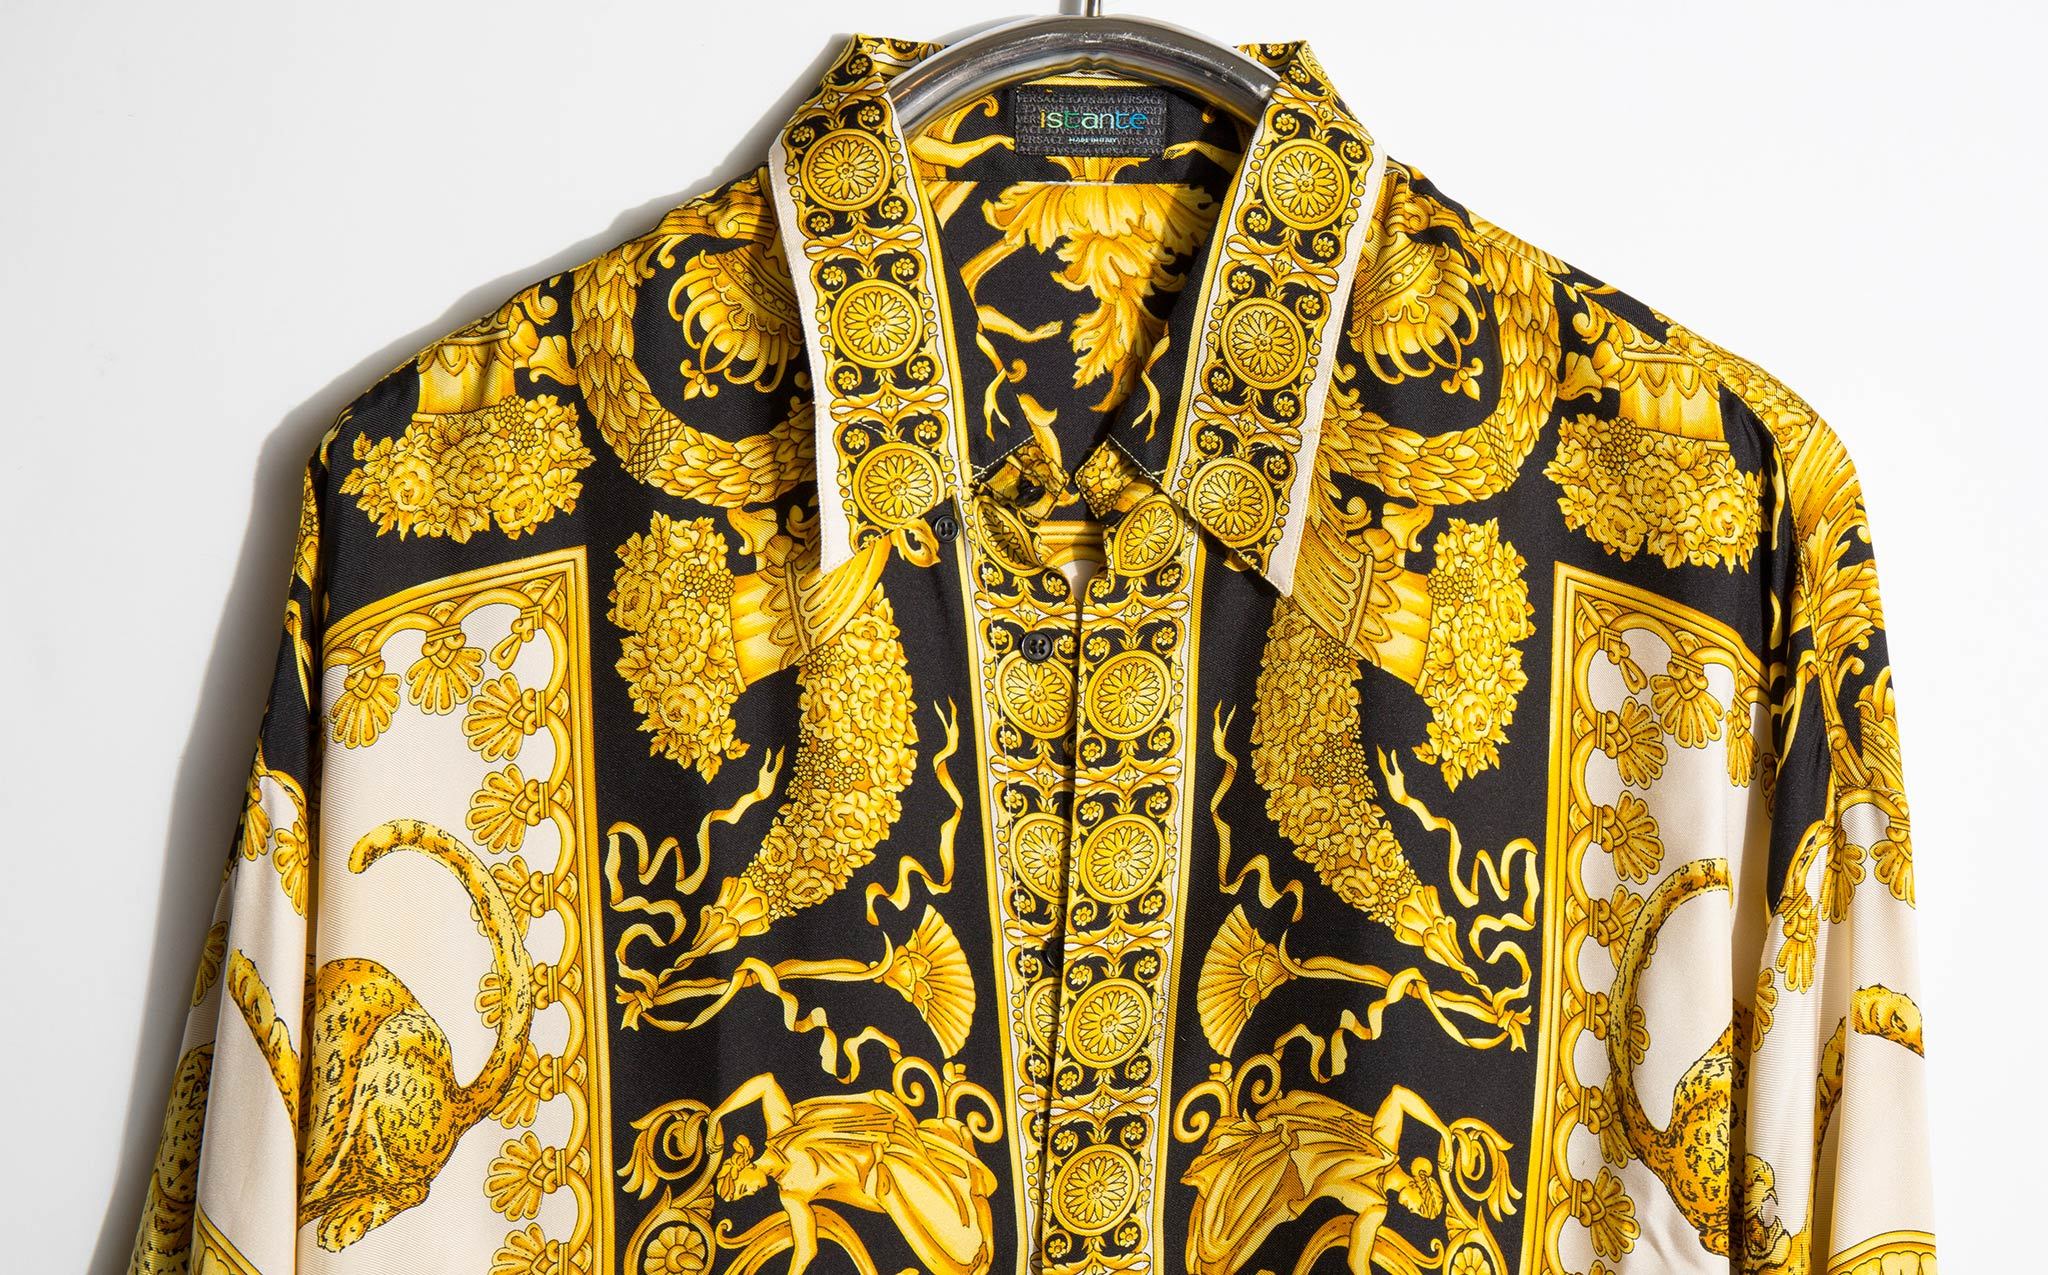 Gianni Versace Iconic 1990's Silk Baroque Print Shirt